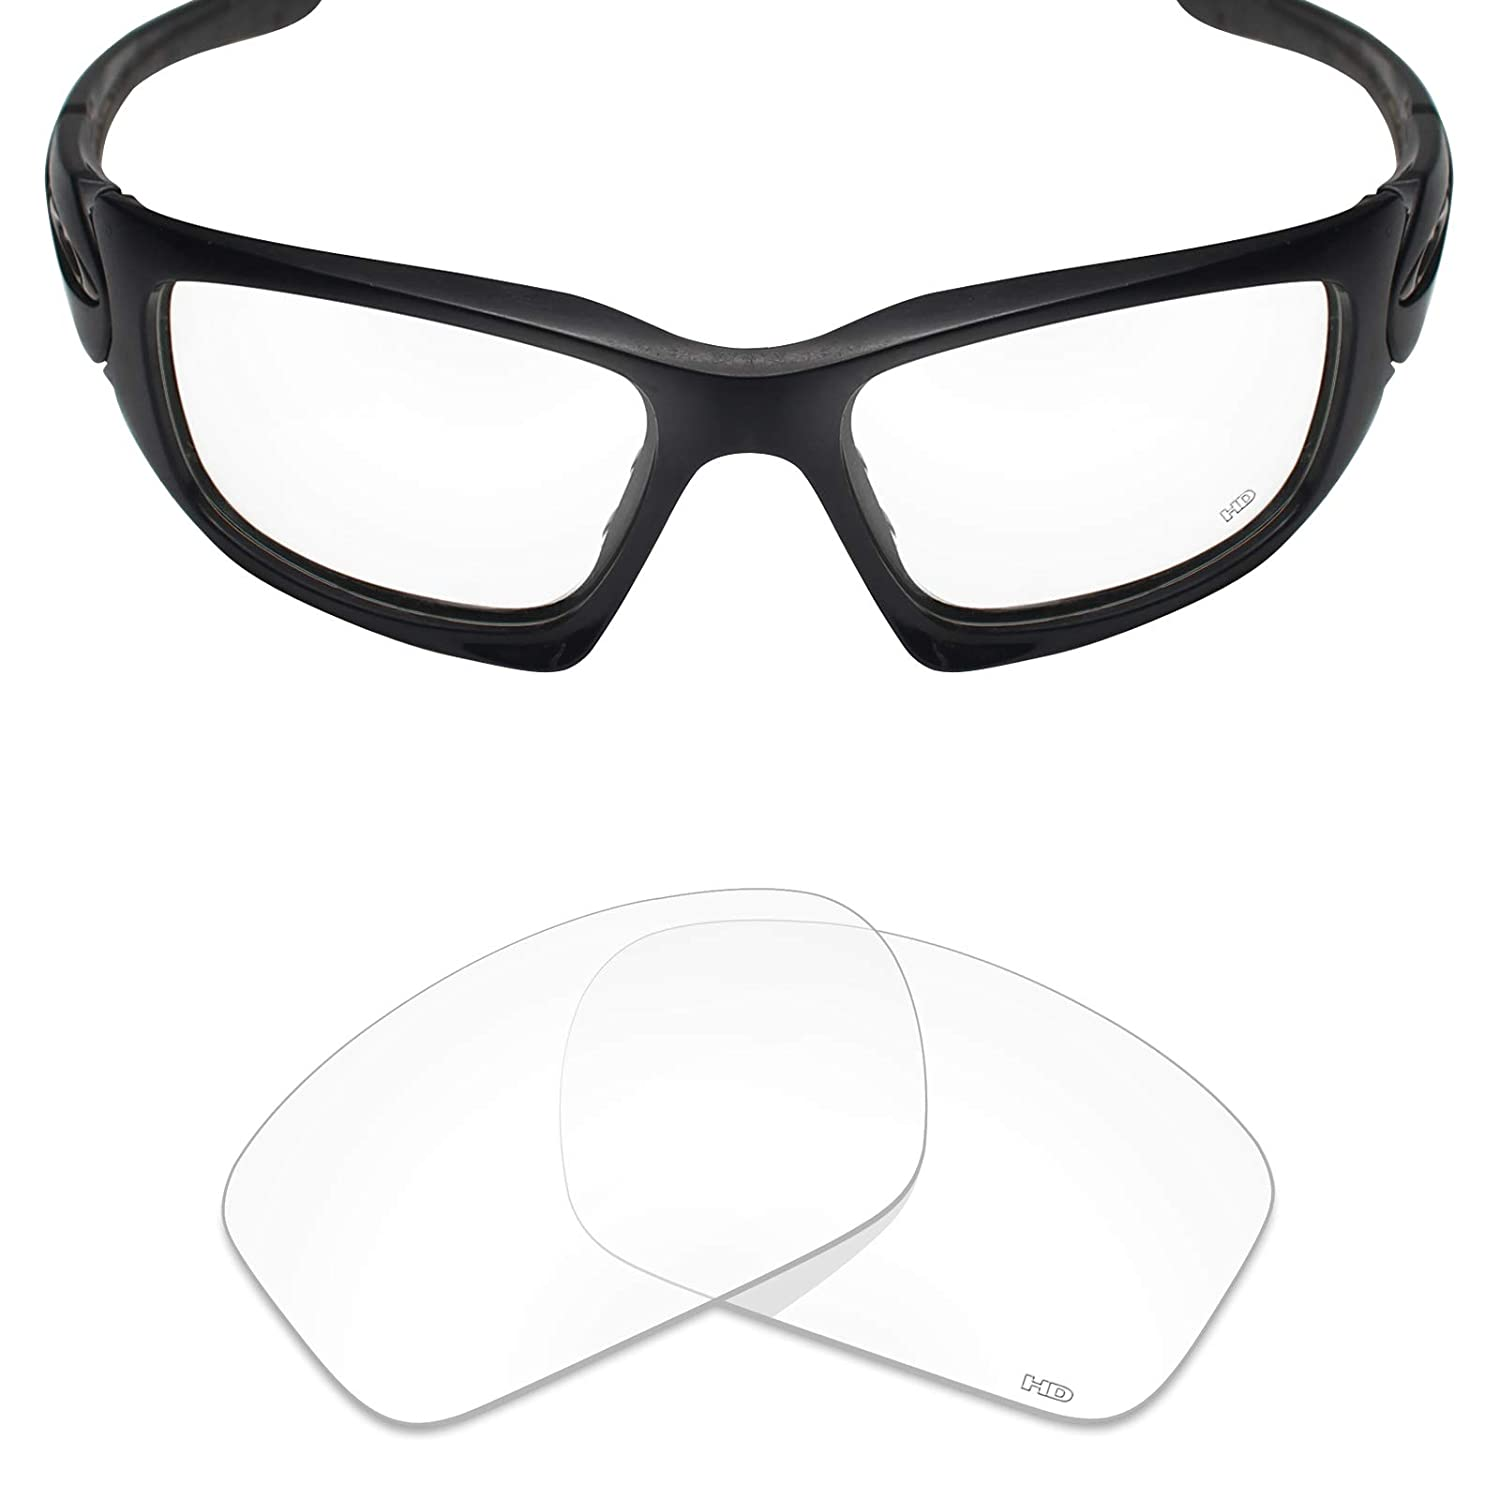 c567788cfb6 Amazon.com  Mryok+ Polarized Replacement Lenses for Oakley Scalpel - HD  Clear  Clothing